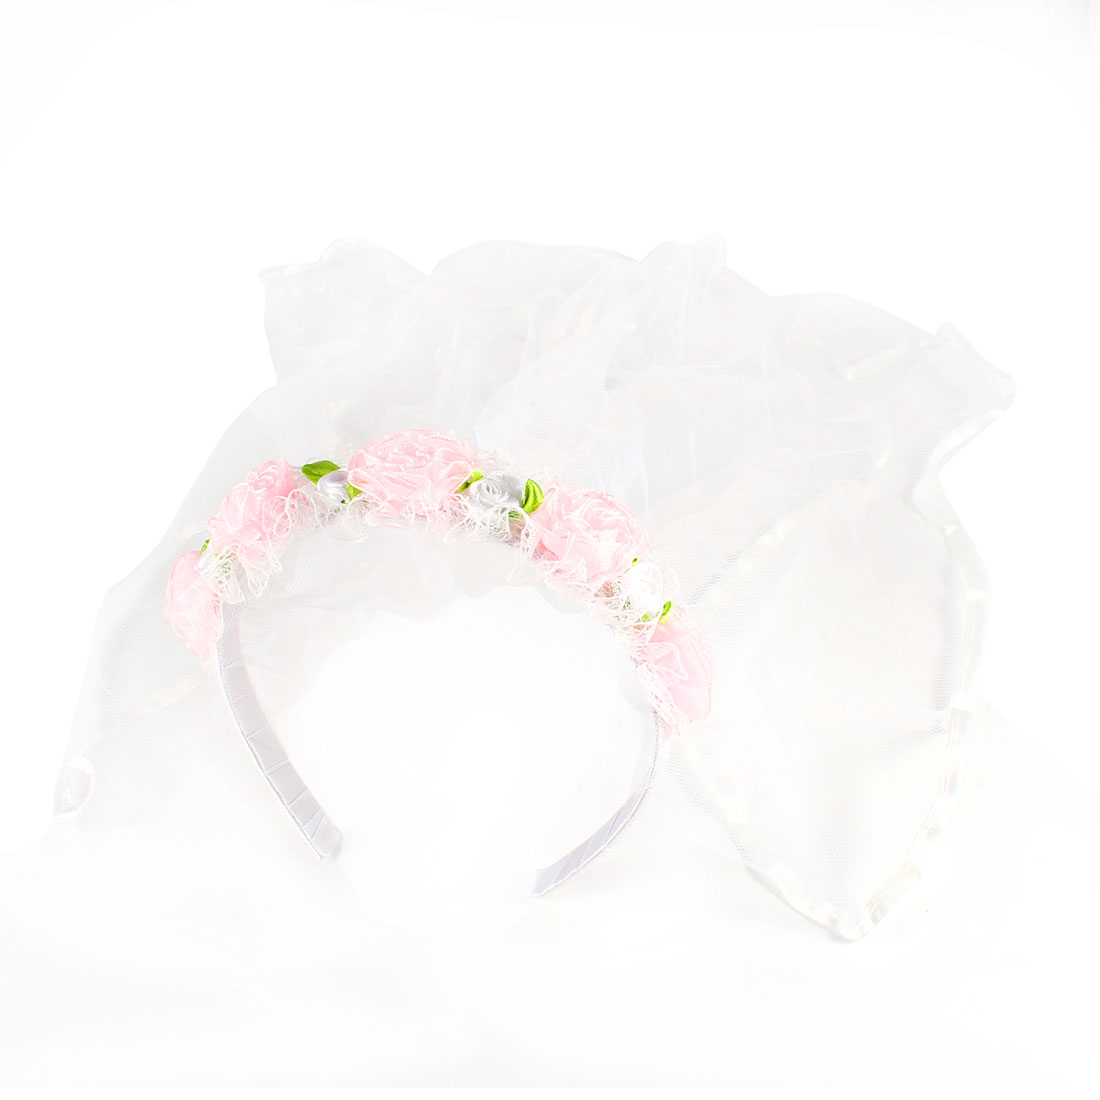 Flower Girl Pink Floral Detail Lace Double Layer Veil Headband Hair Band White